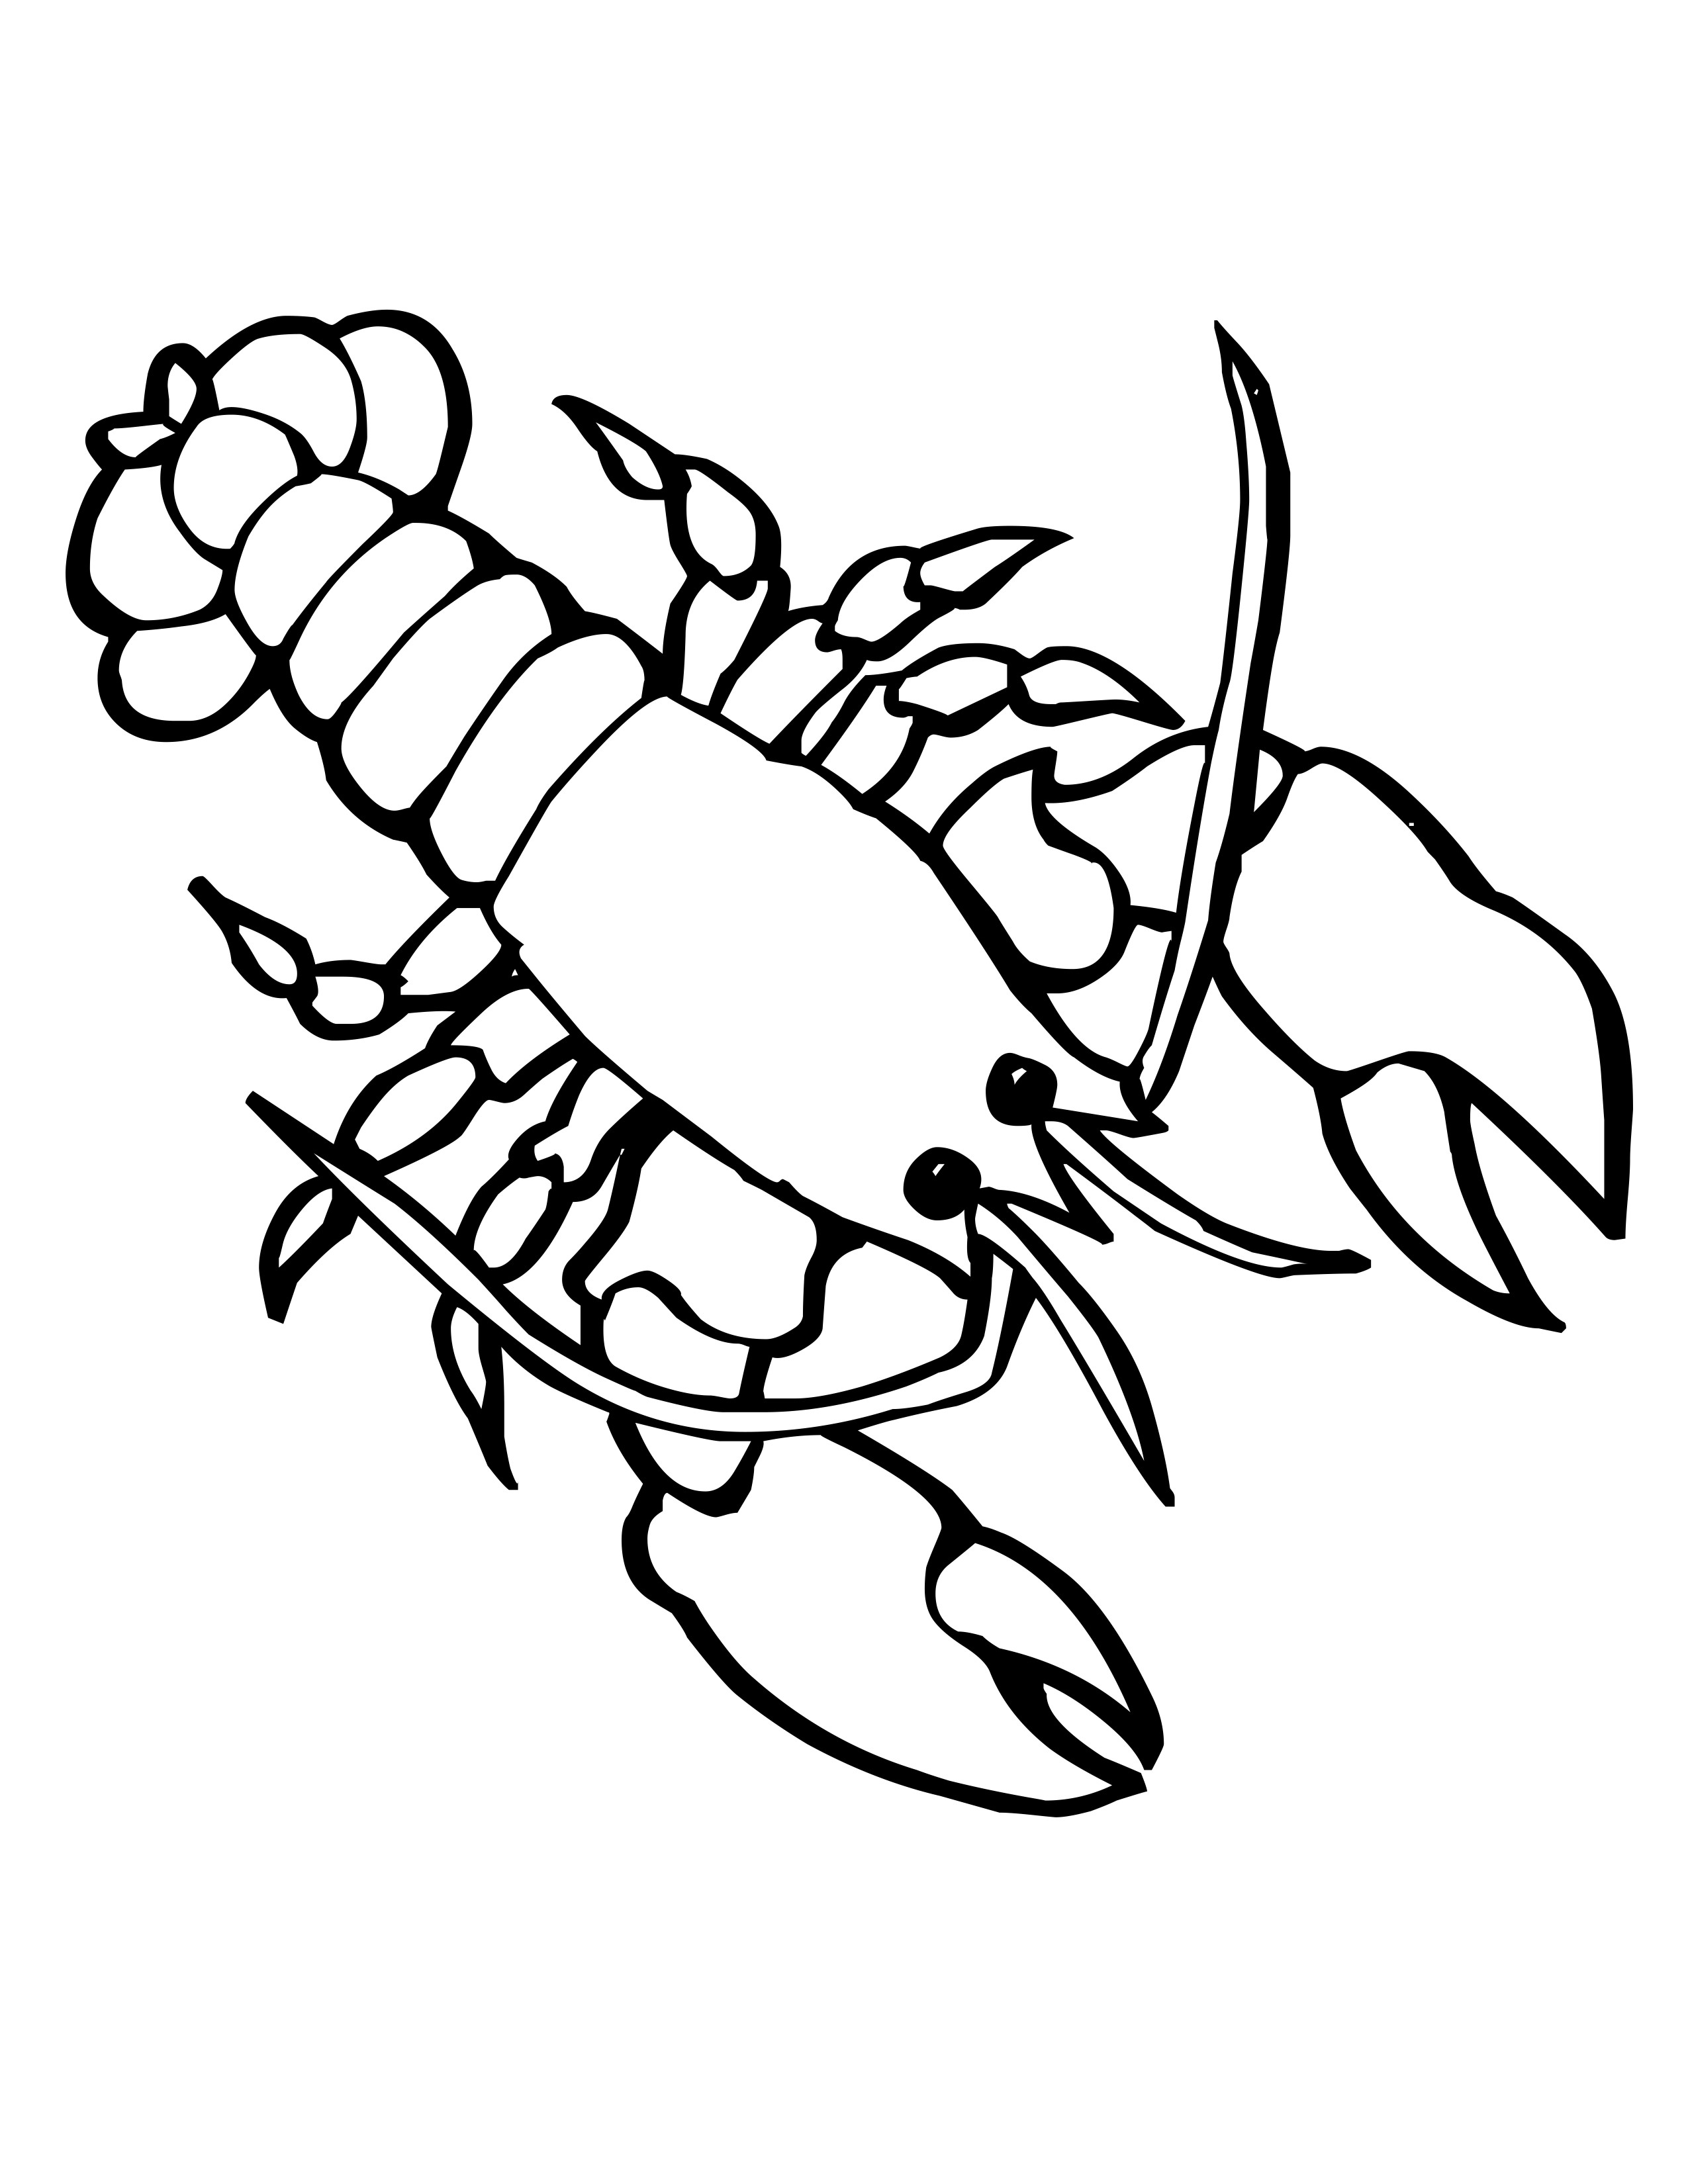 Simple Lobster Drawing At Getdrawings